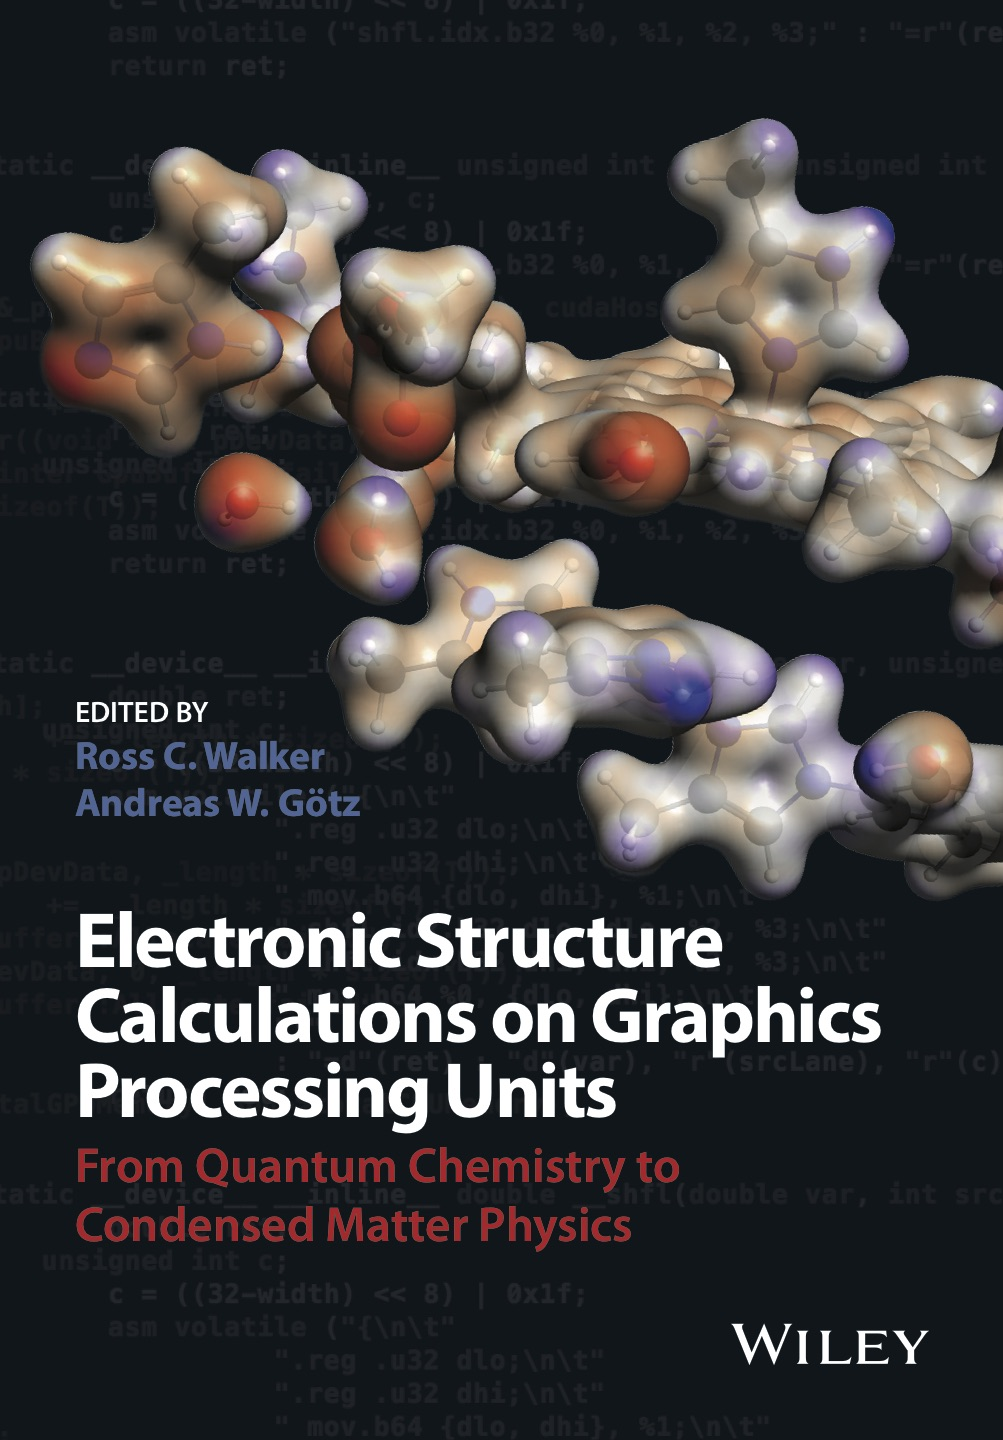 Book Electronic Structure Calculations on Graphics Processing Units